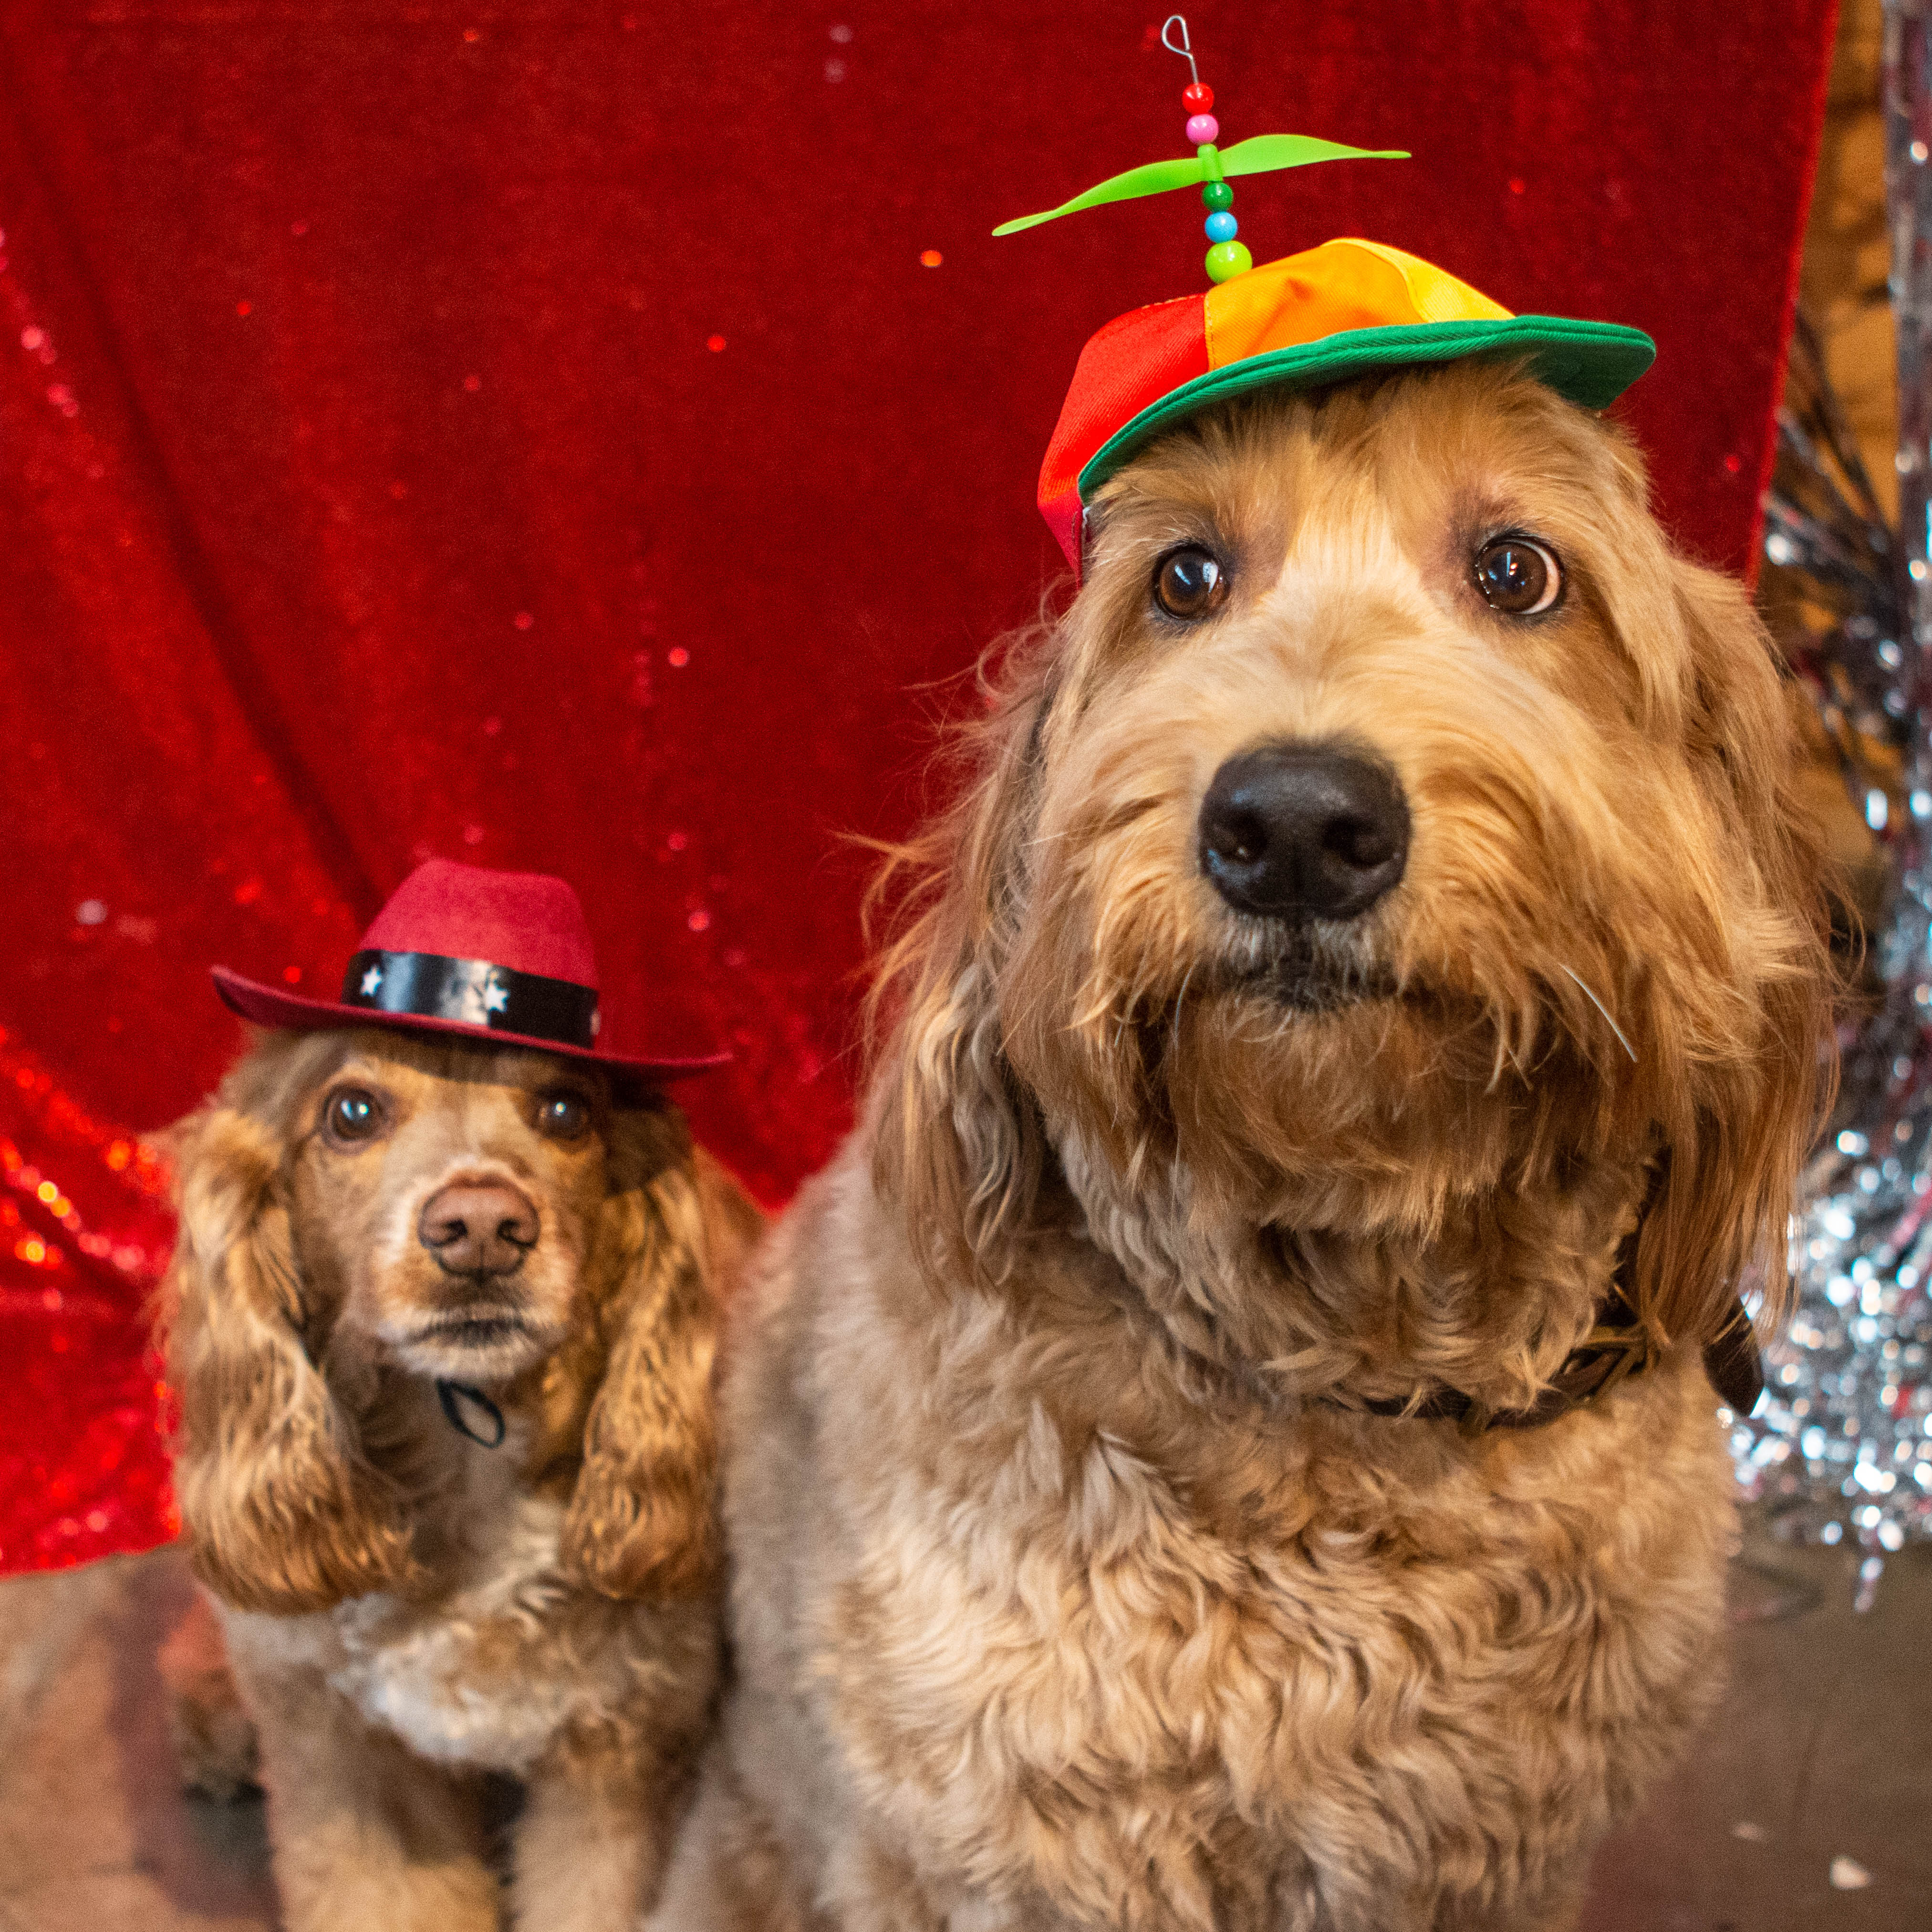 Enjoy our Doggy Photo Booth